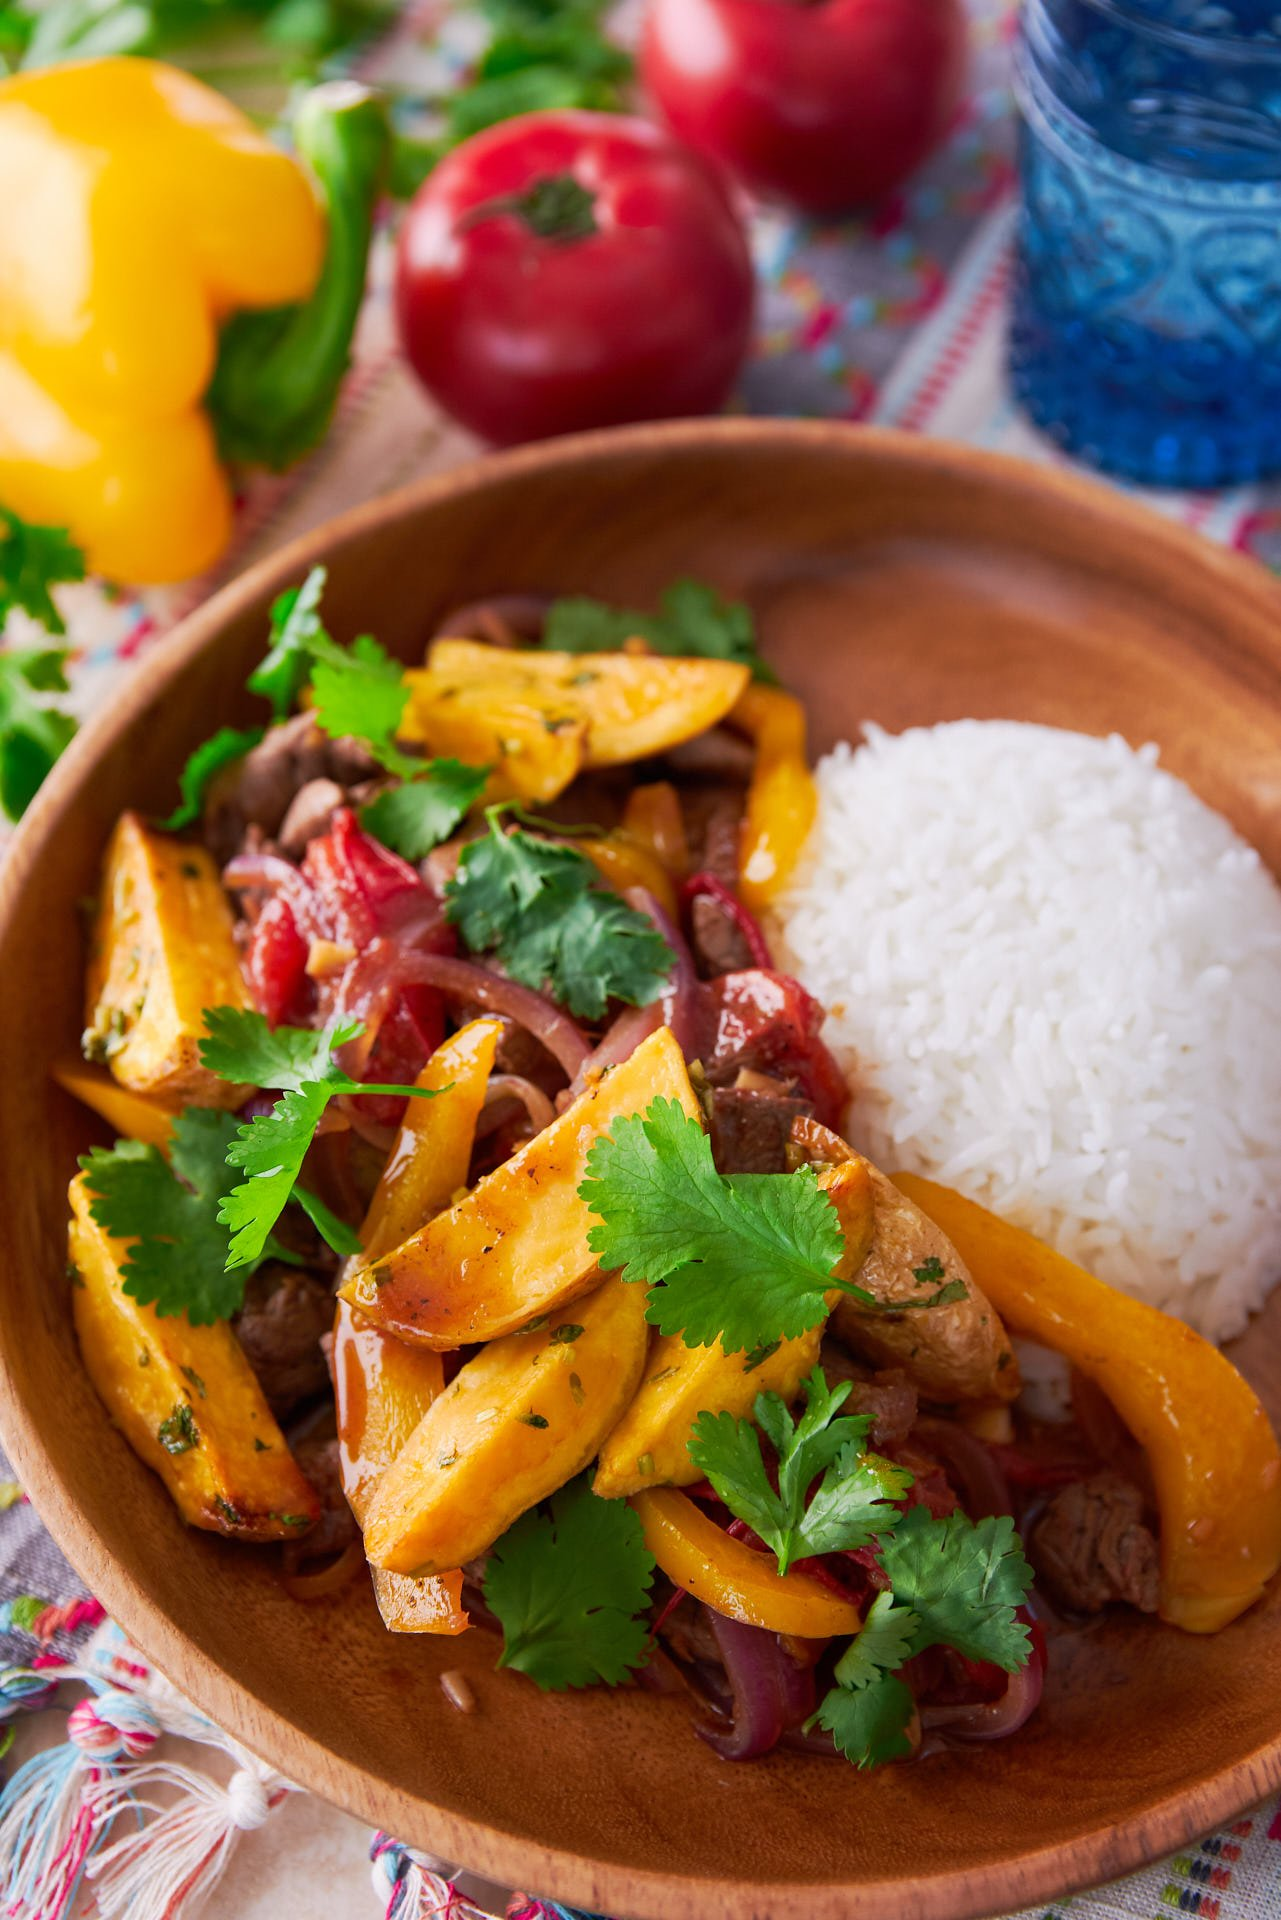 With tender beef stir-fried with garlic, onions, peppers, and tomatoes, Lomo Saltado is an awesome mashup of Peruvian and Chinese cuisine. Topped with crisp French fries, it's irresistibly good!